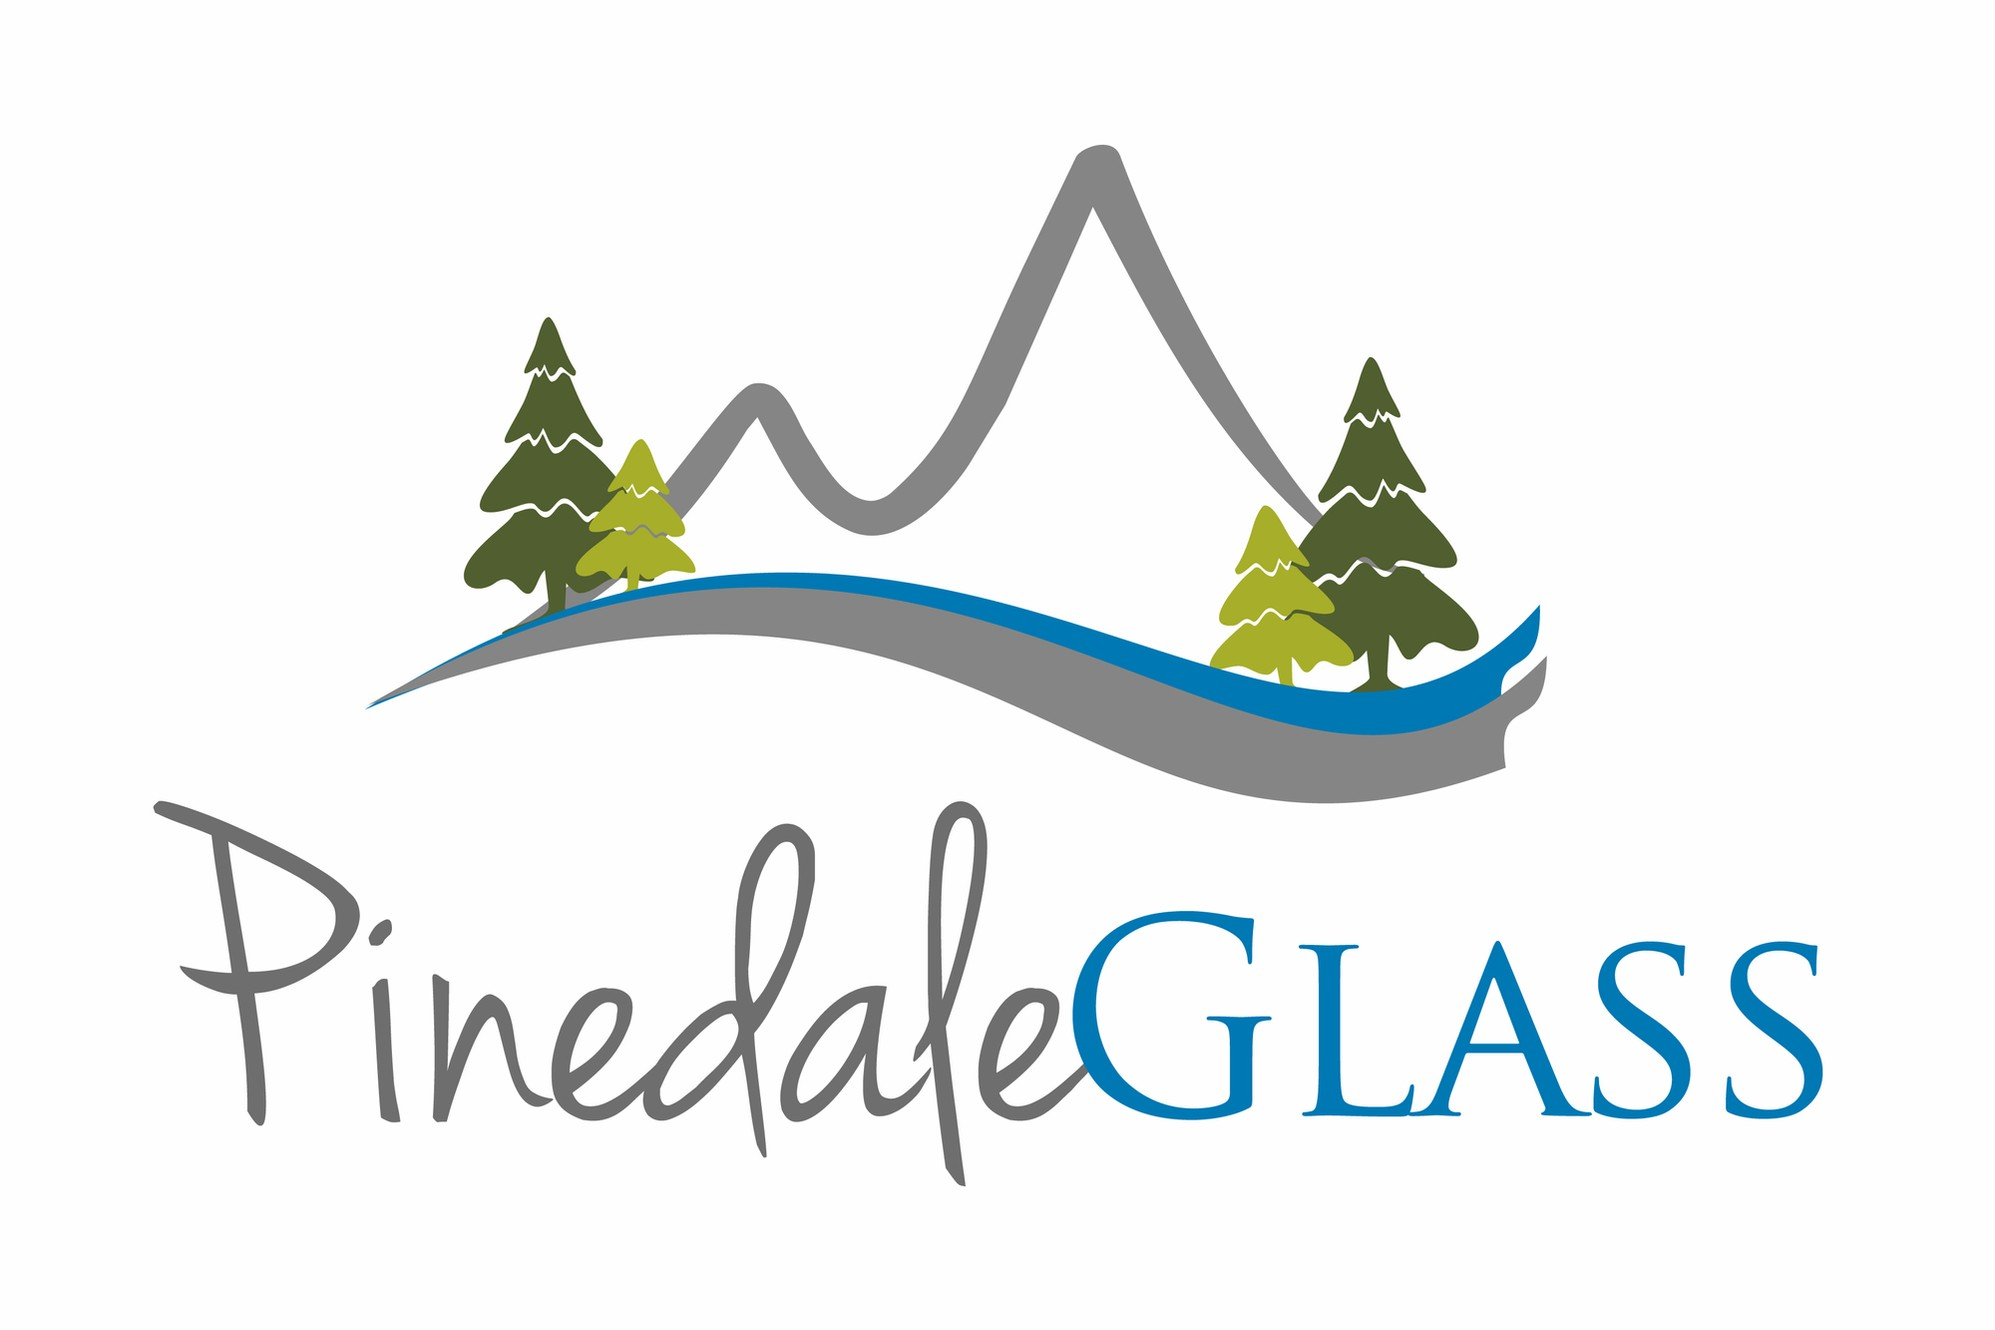 pinedale glass